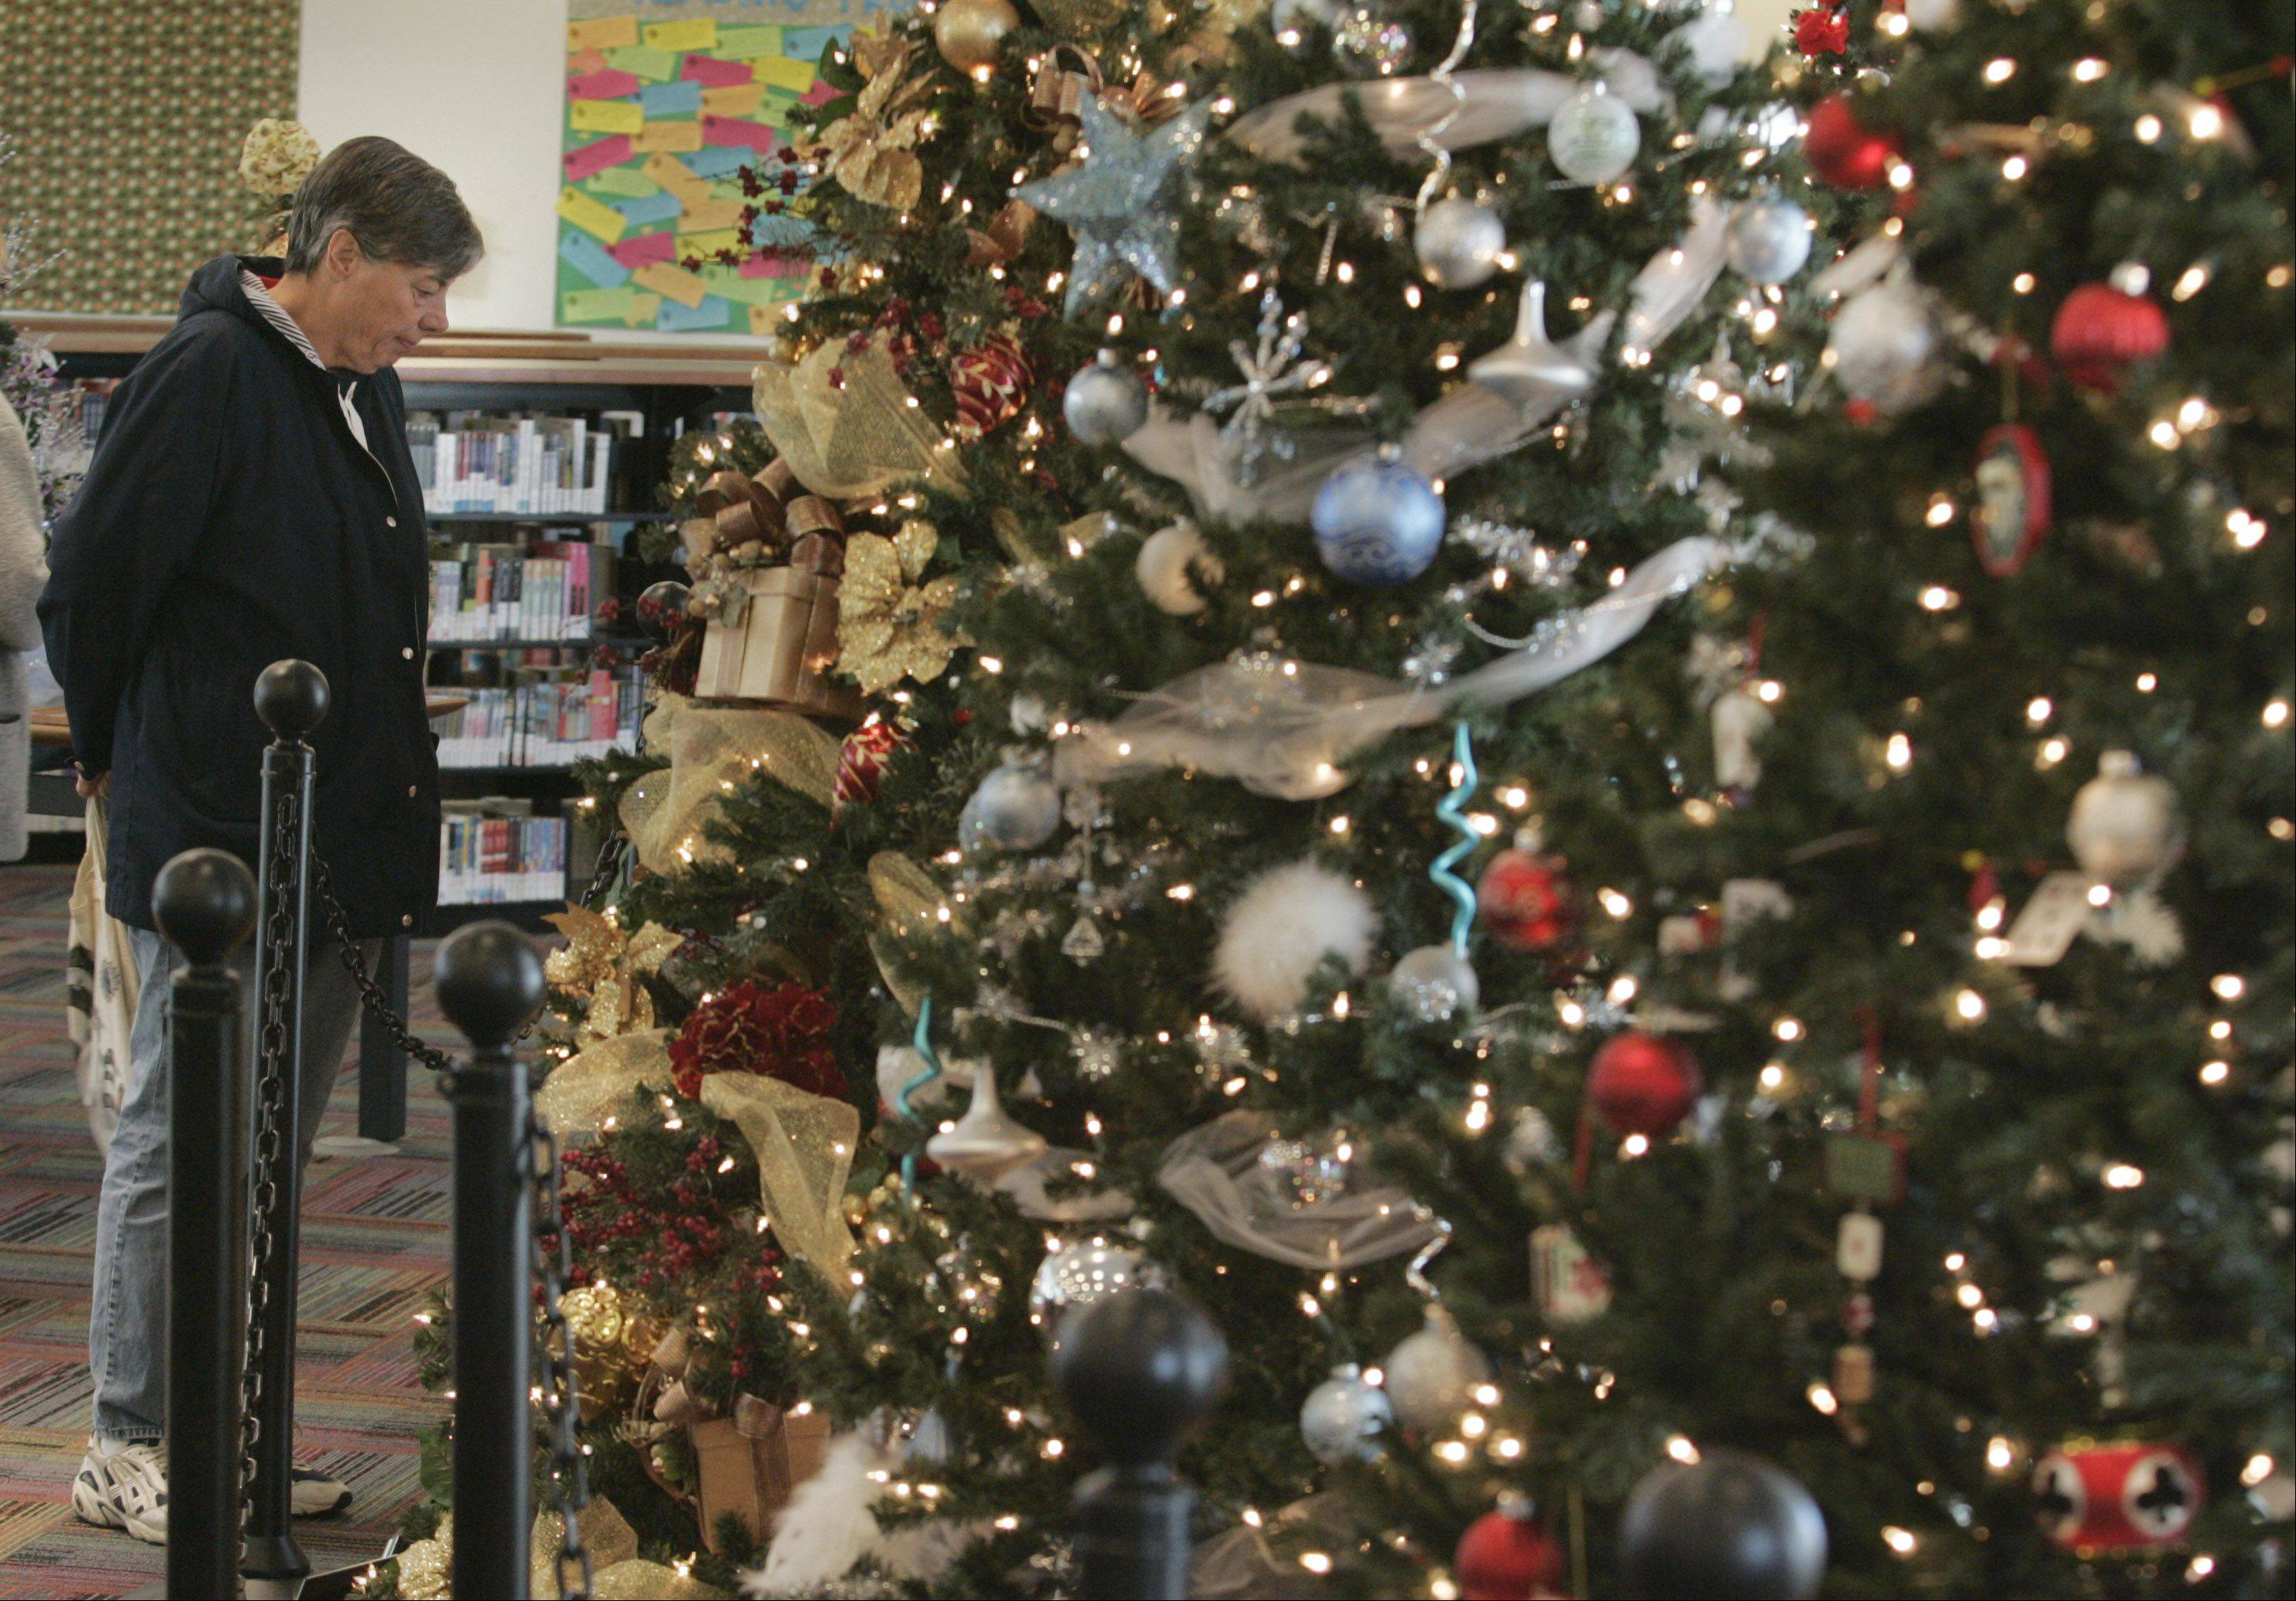 Rosemary Holland of Elgin takes a look at the 2006 Festival of Trees display at the Gail Borden Public Library. The exhibit, which moved from its former location at the Elgin Police Department, features trees sponsored by local businesses to benefit the Ecker Center for Mental Health.